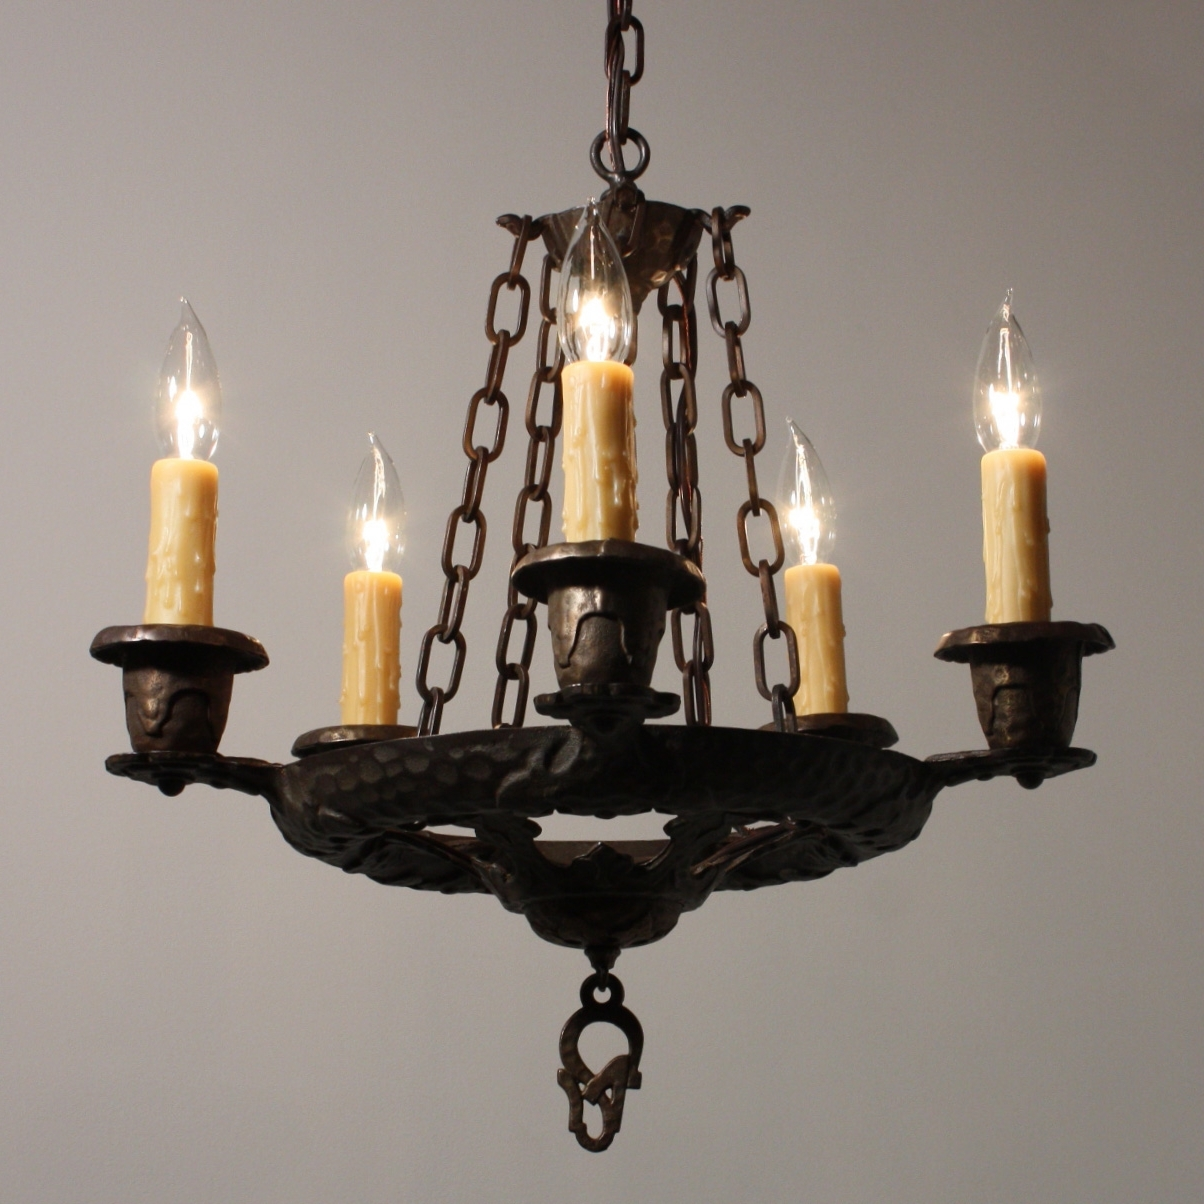 Cast Iron Antique Chandelier Throughout 2018 Handsome Antique Five Light Tudor Chandelier, Cast Iron, Nc1650 Rw (View 2 of 15)